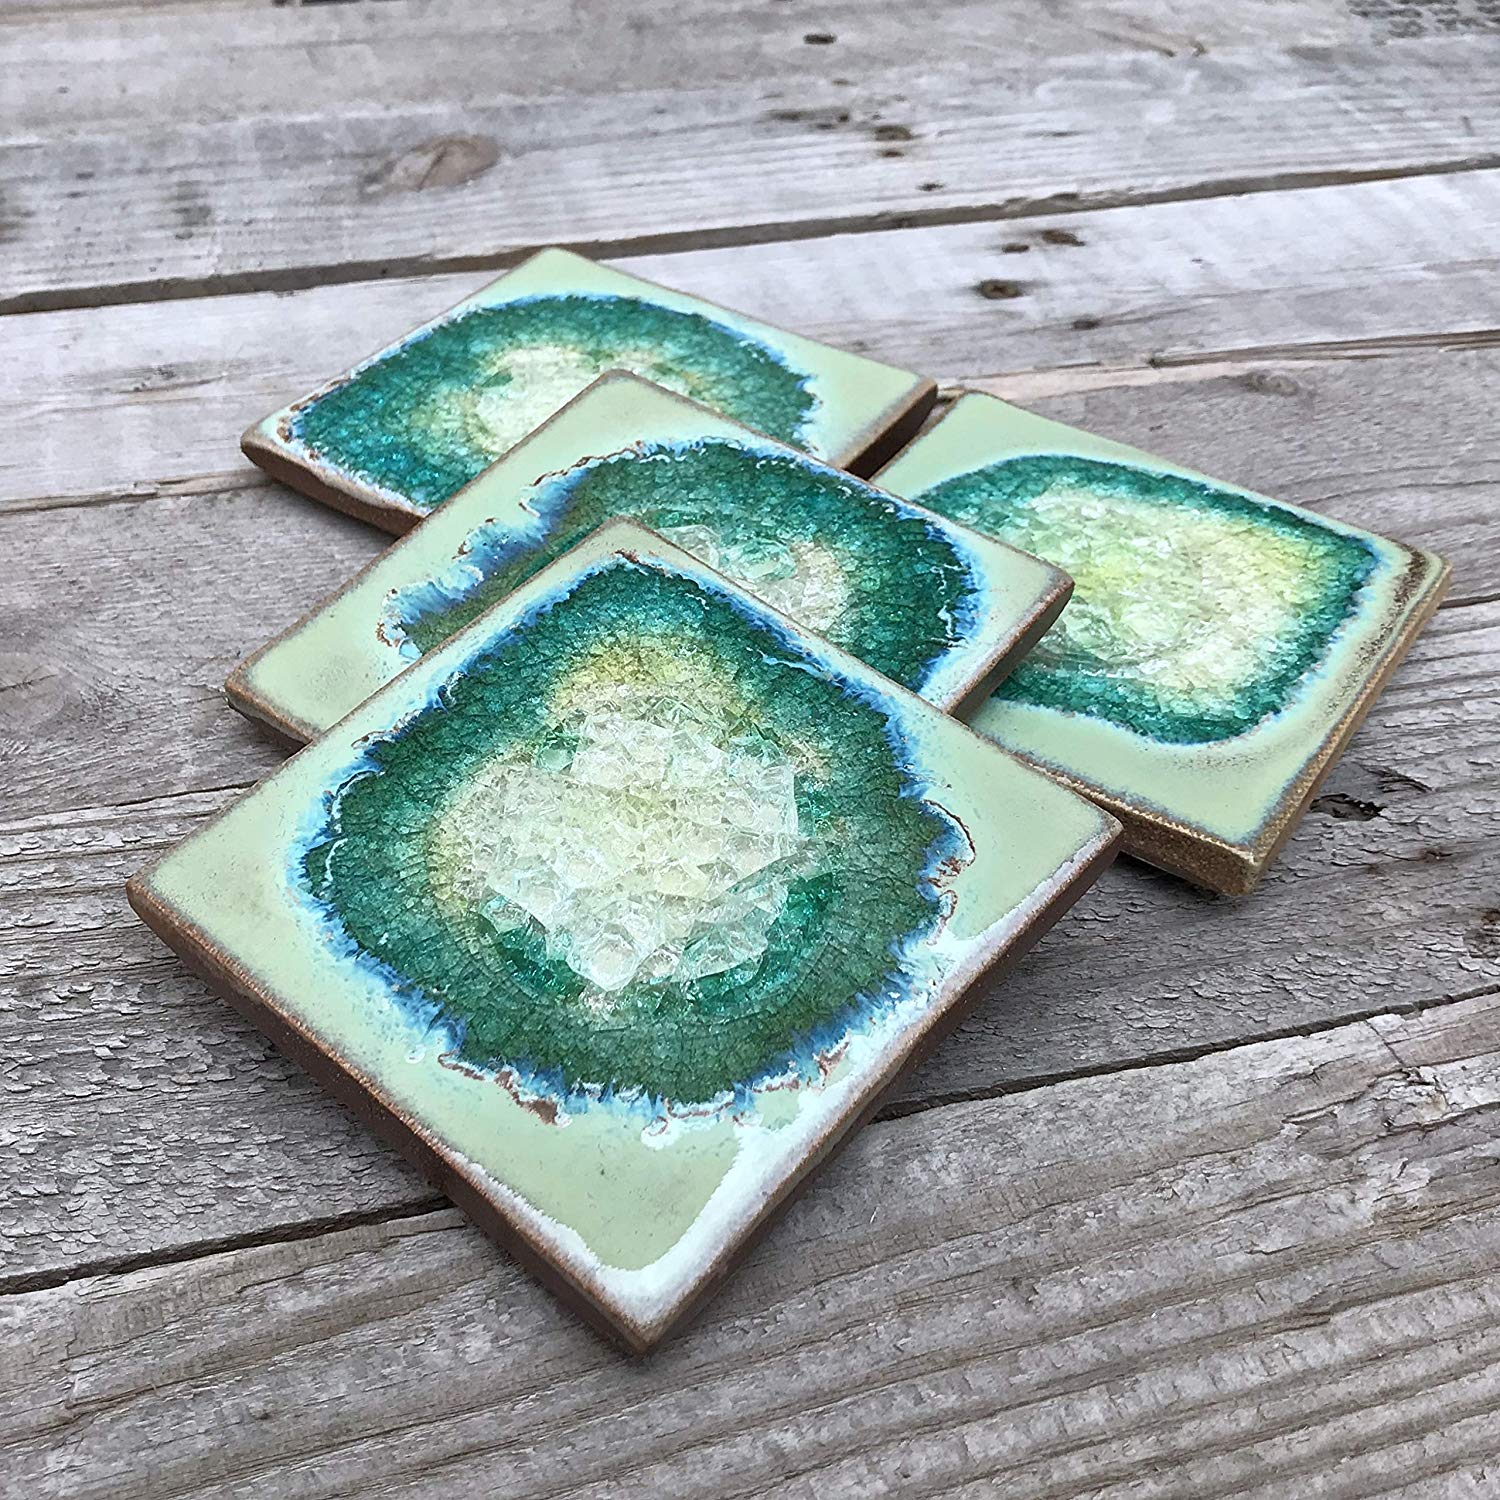 Geode Crackle Coaster Set of 4 in TEXTURED TURQUOISE: Geode Coaster, Crackle Coaster, Fused Glass Coaster, Crackle Glass Coaster, Agate Coaster, Ceramic Coaster, Dock 6 Pottery Coaster